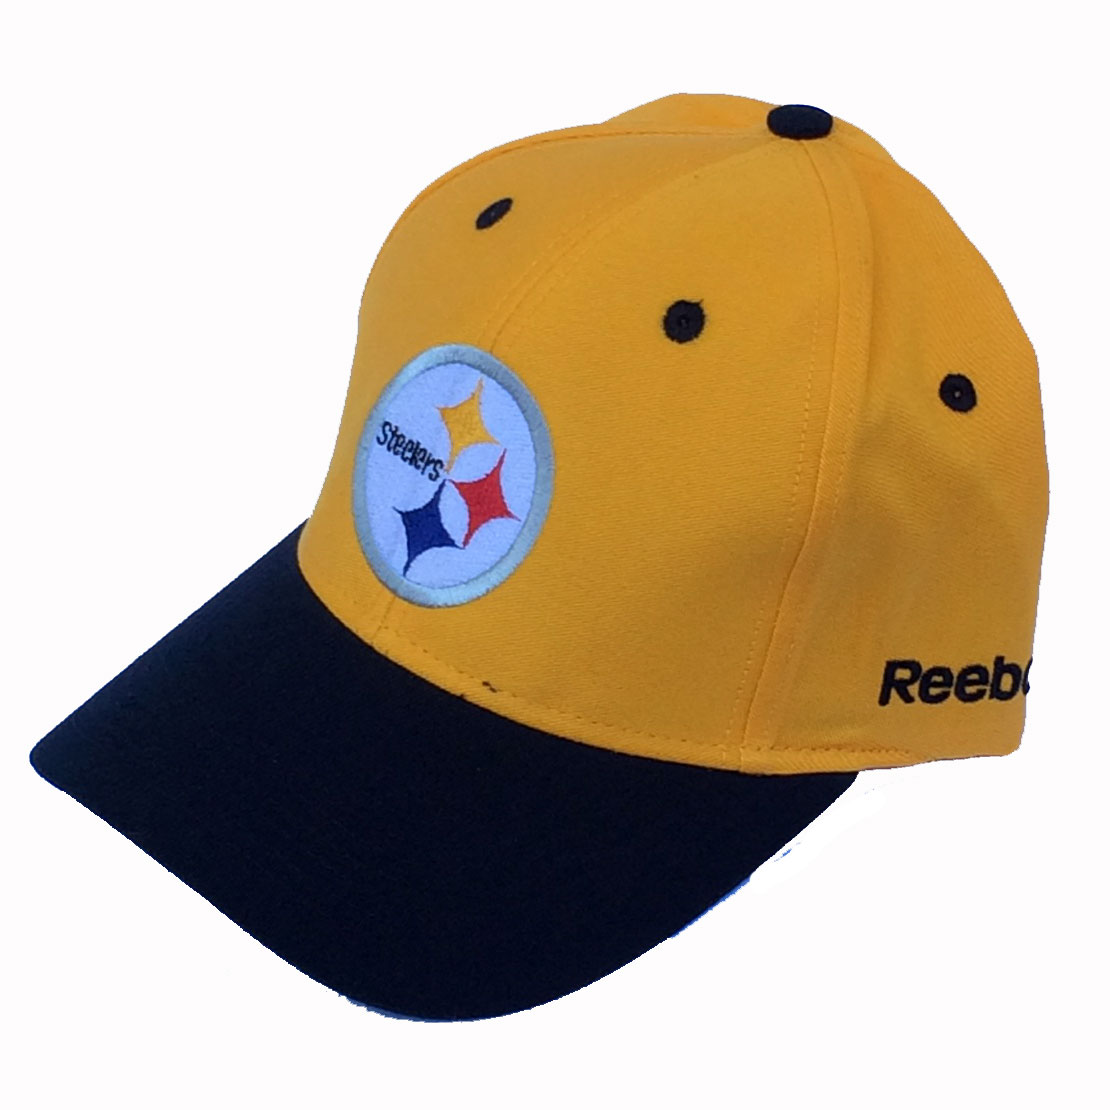 9fabb2db0 ... Pittsburgh Steelers Cap- Yellow with Black Bill (#41938 / 4 pack). 41938